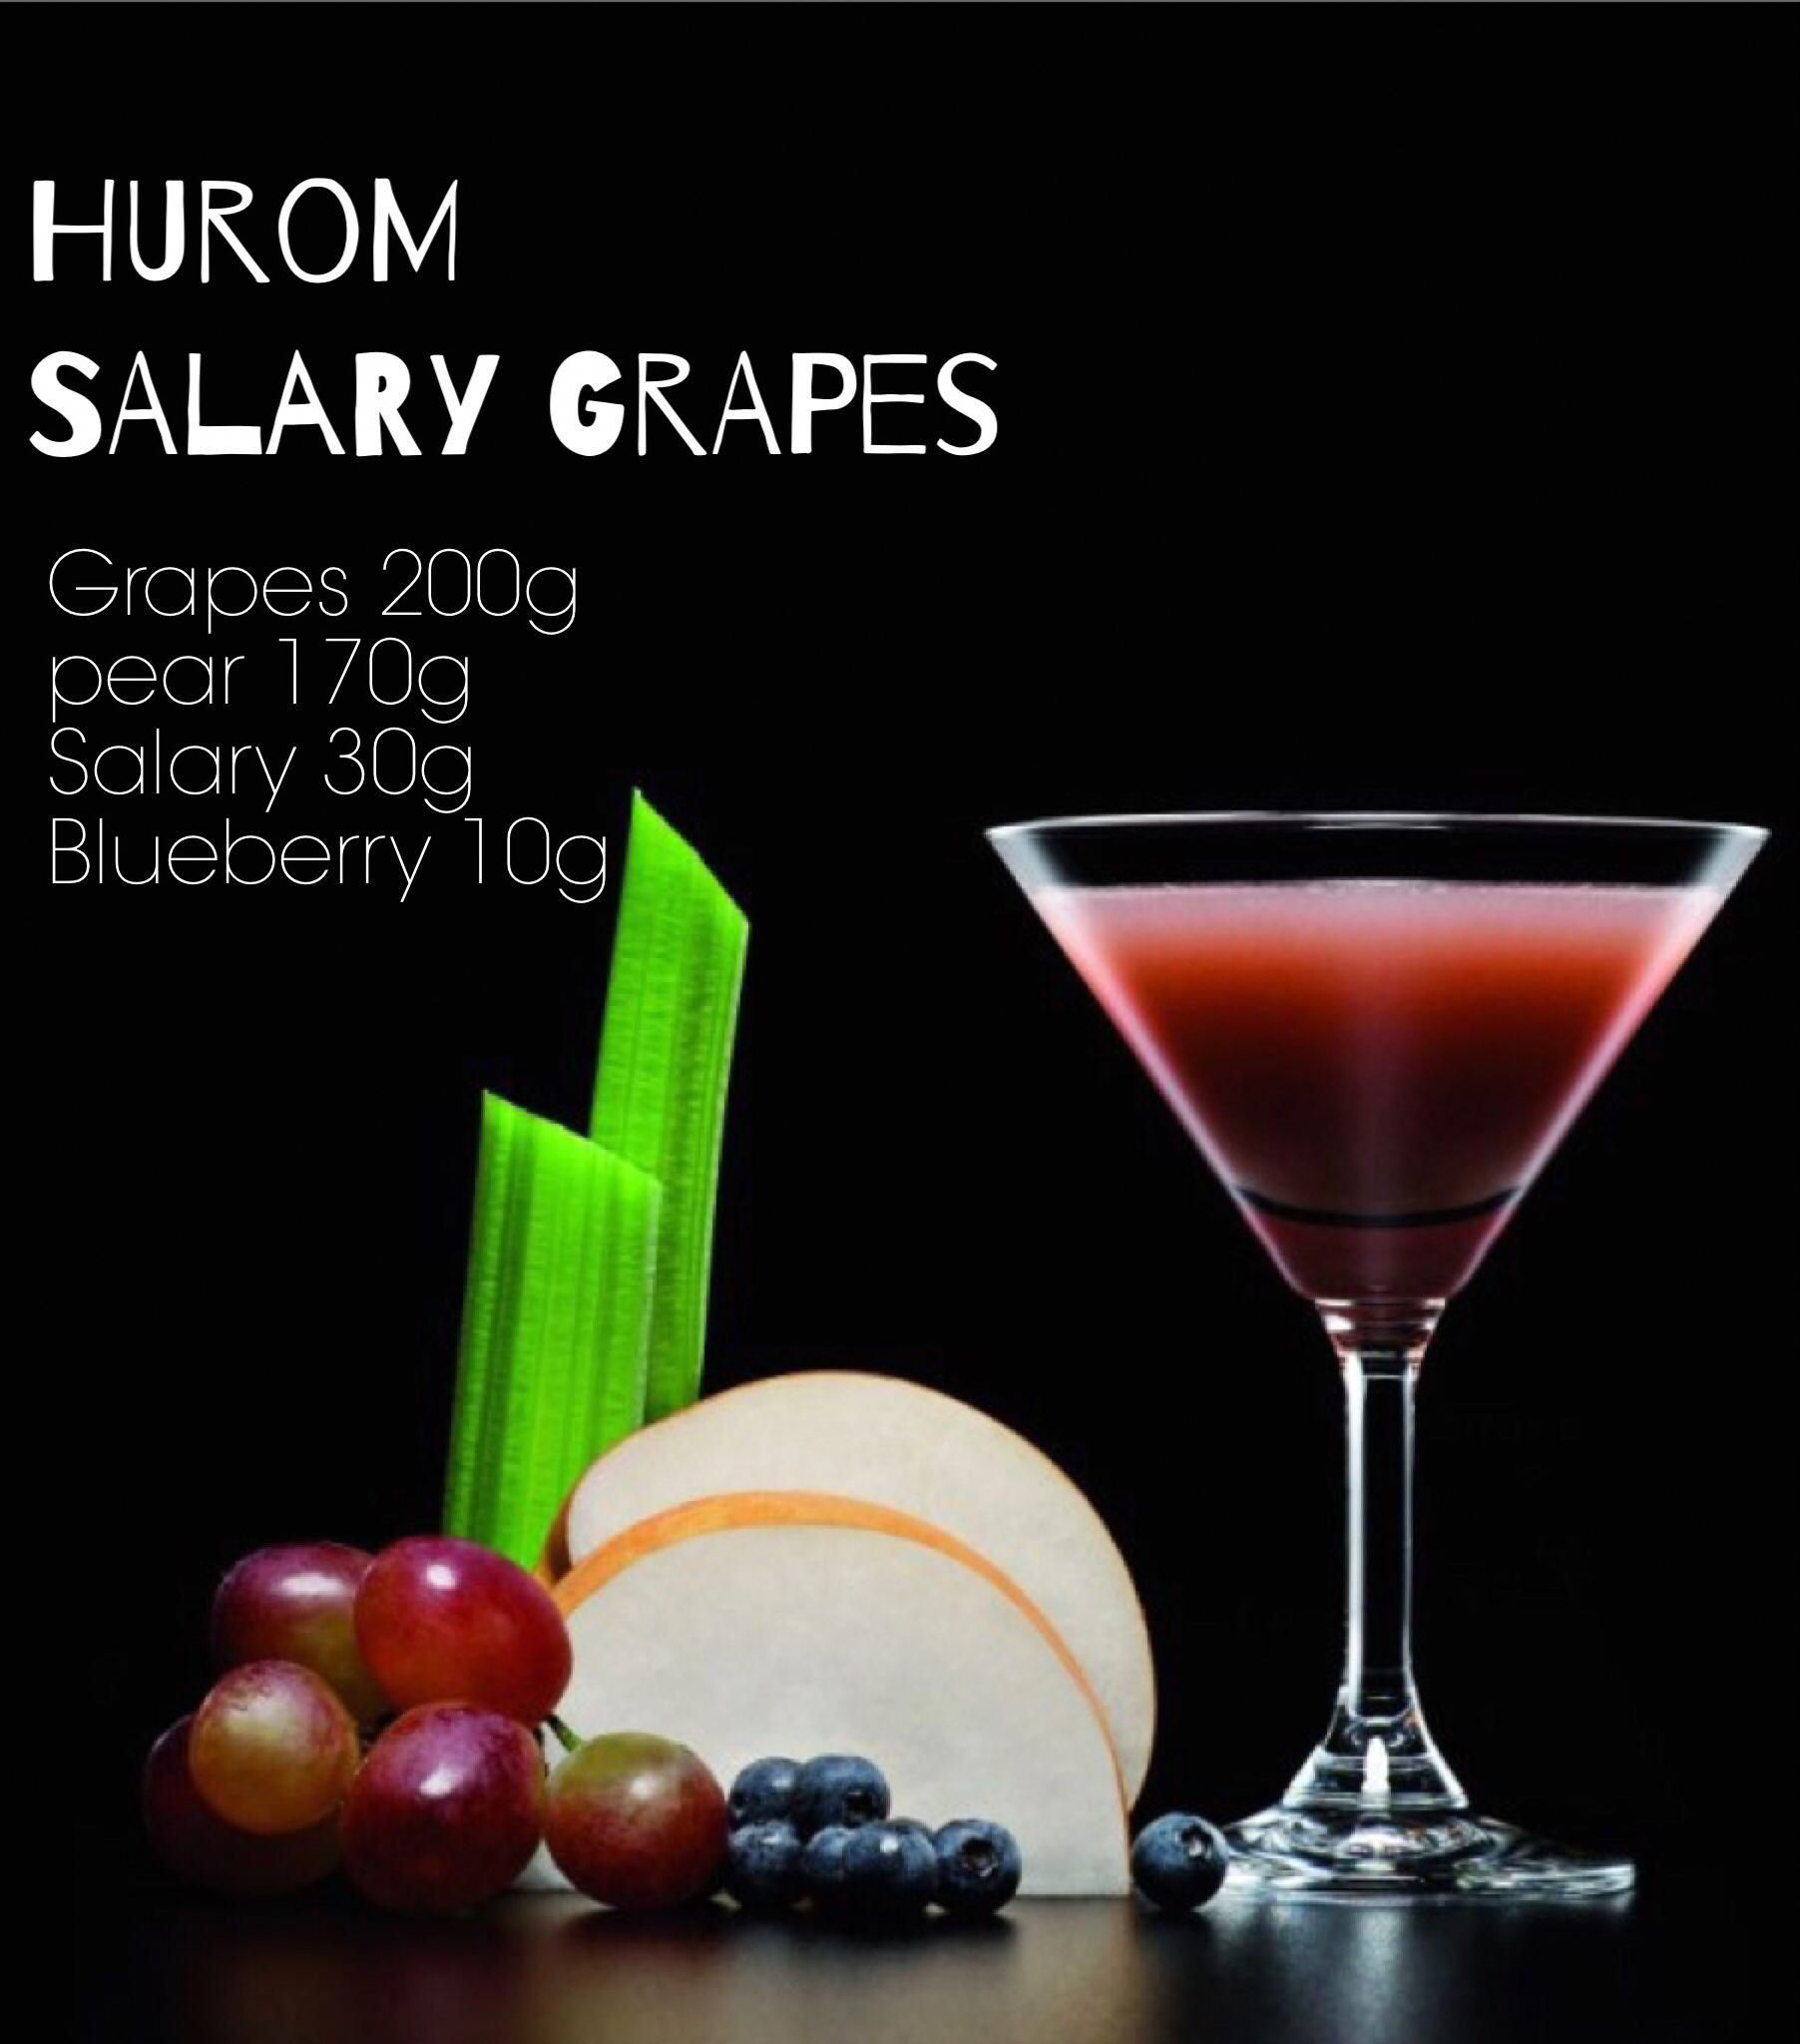 Salary grapes how to make separate the each grape from the